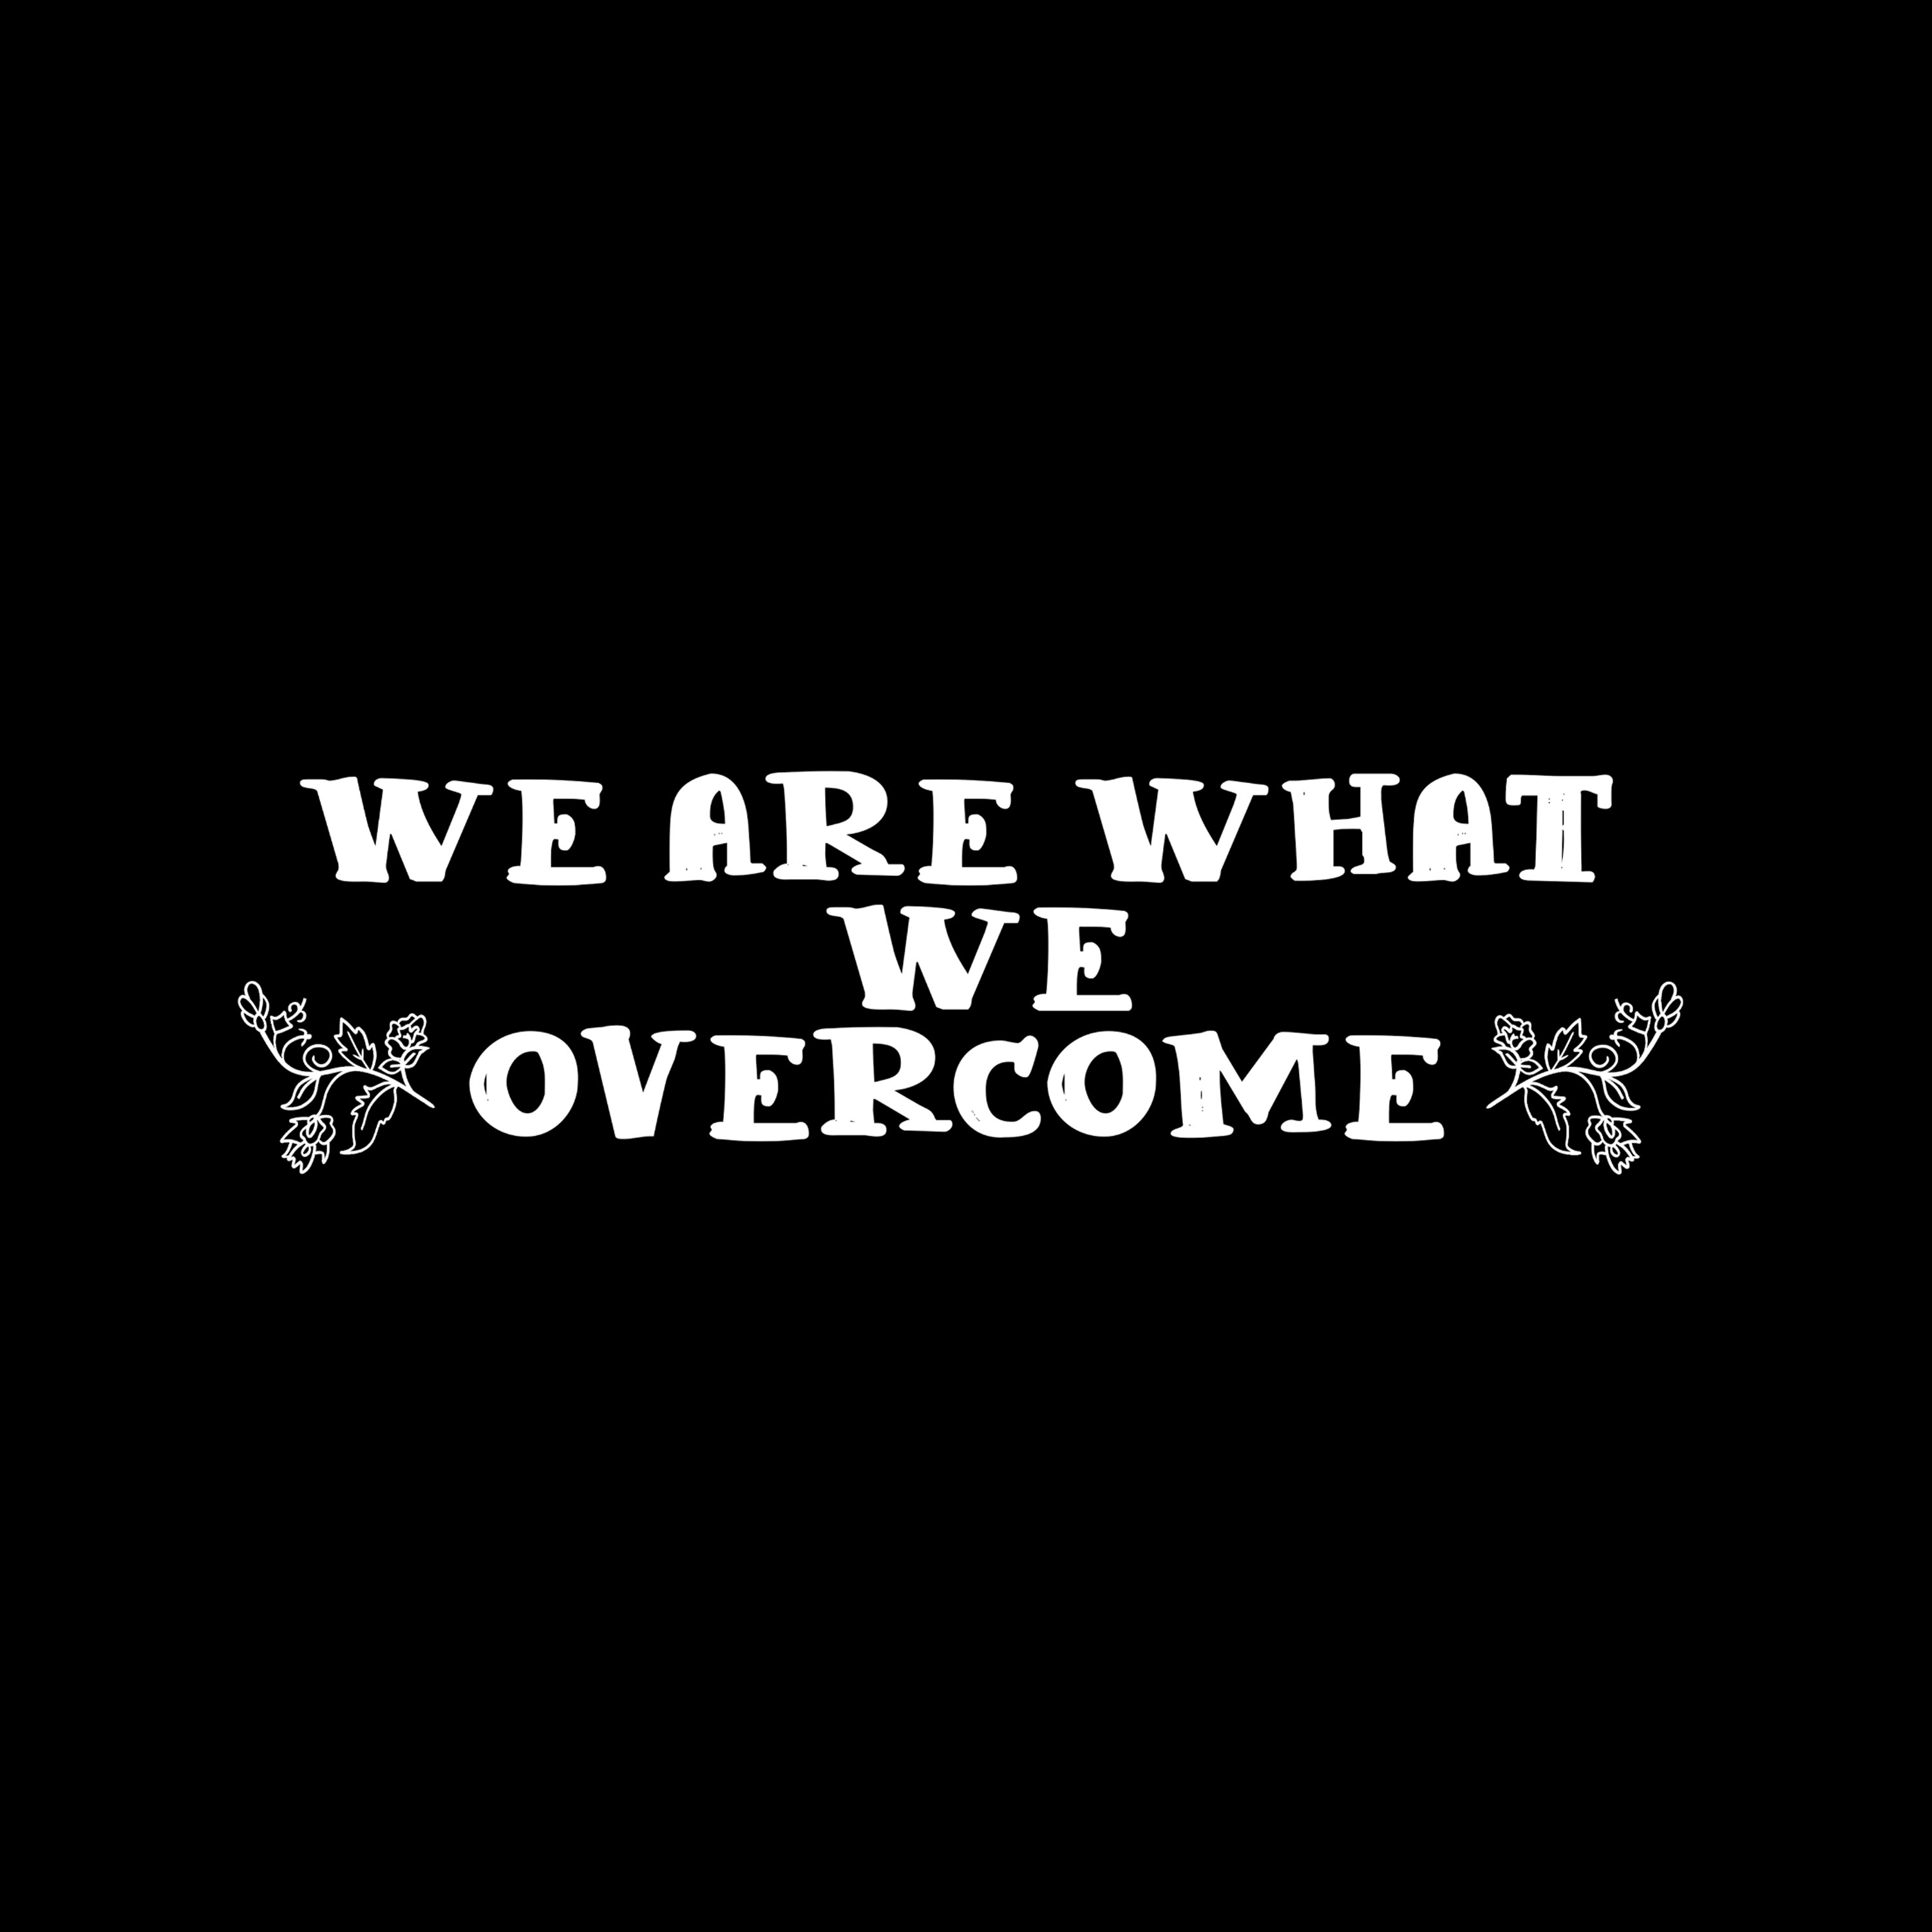 We Are What We Overcome